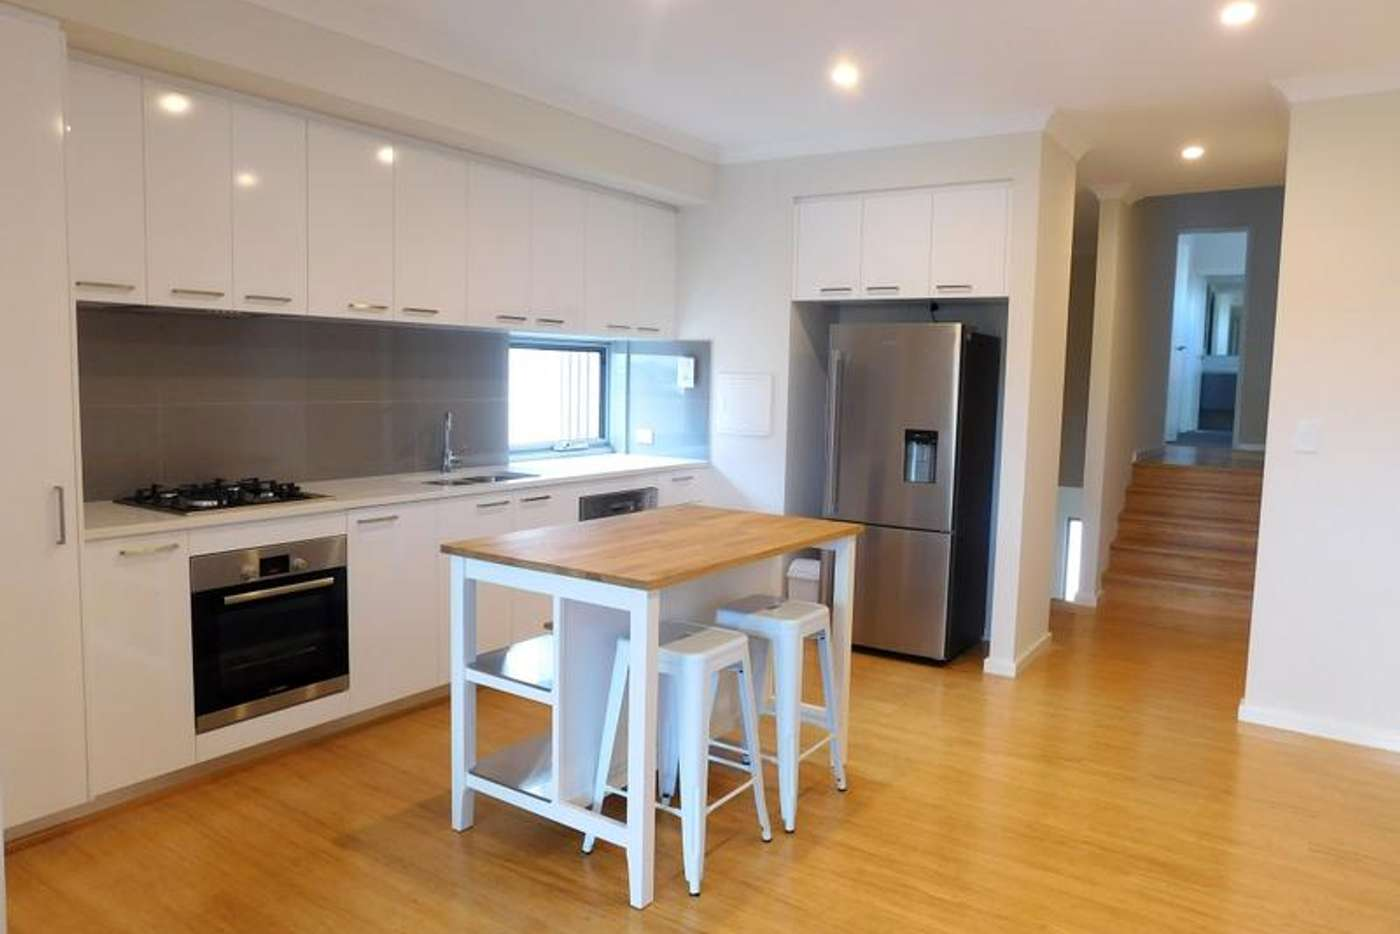 Main view of Homely apartment listing, 6/18 Brady Street, Mount Hawthorn WA 6016